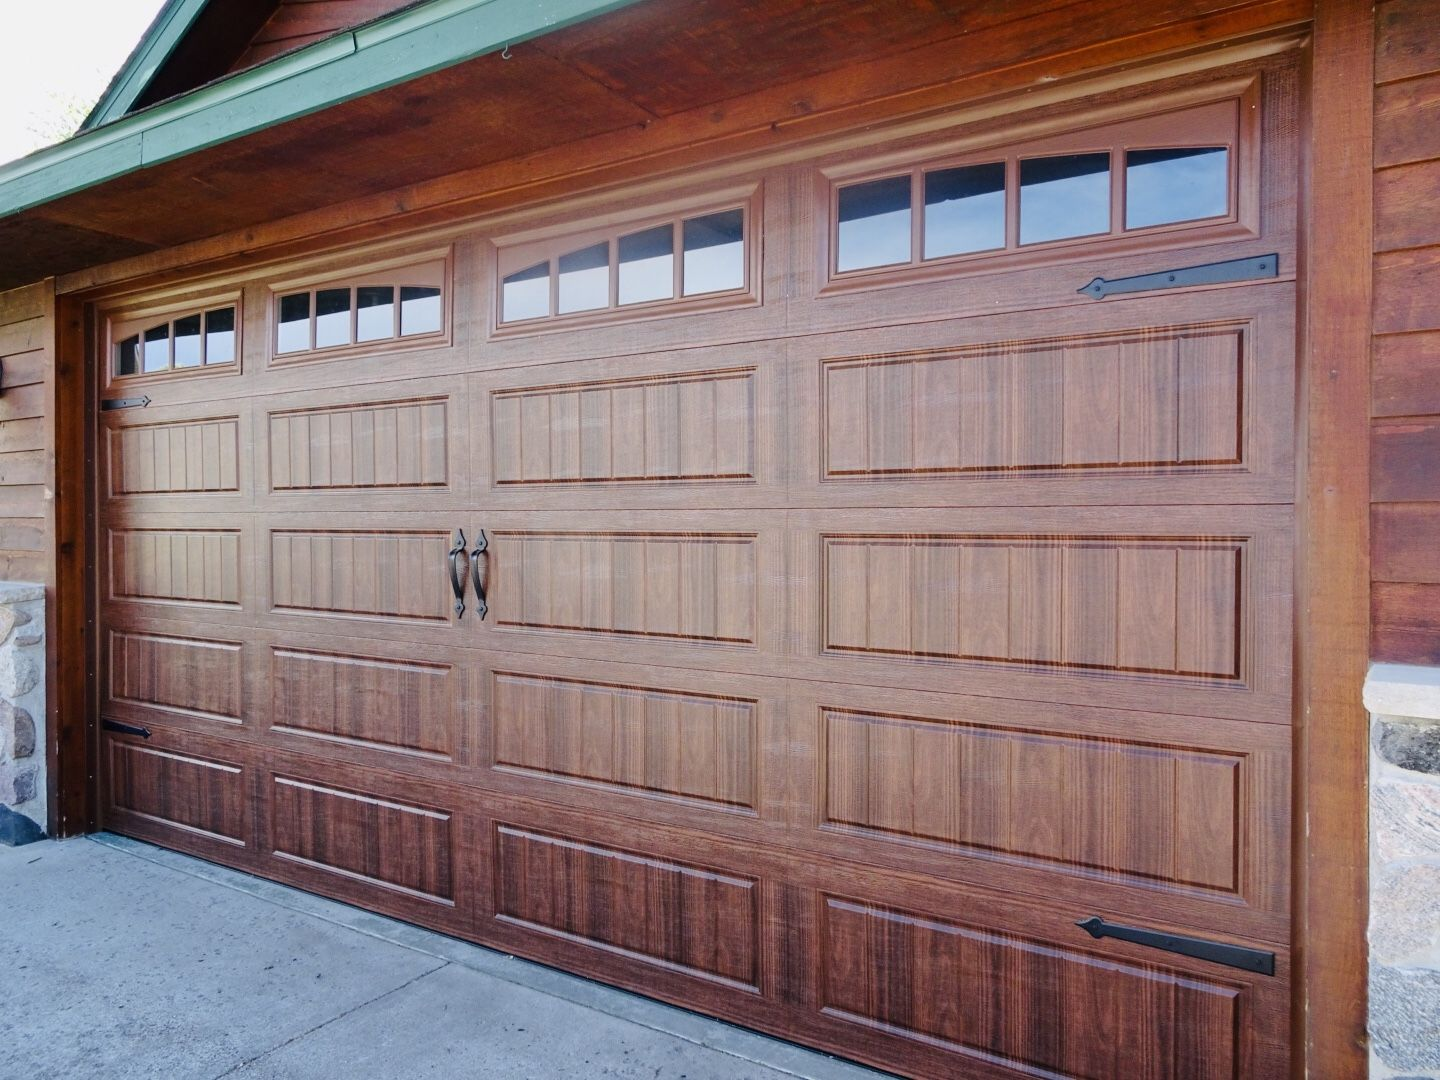 Amarr Hillcrest 3000 Garage Door In Walnut With Long Panel Bead Board And Arched Thames Windows Garage Doors Aluminium Garage Doors Garage Door Design